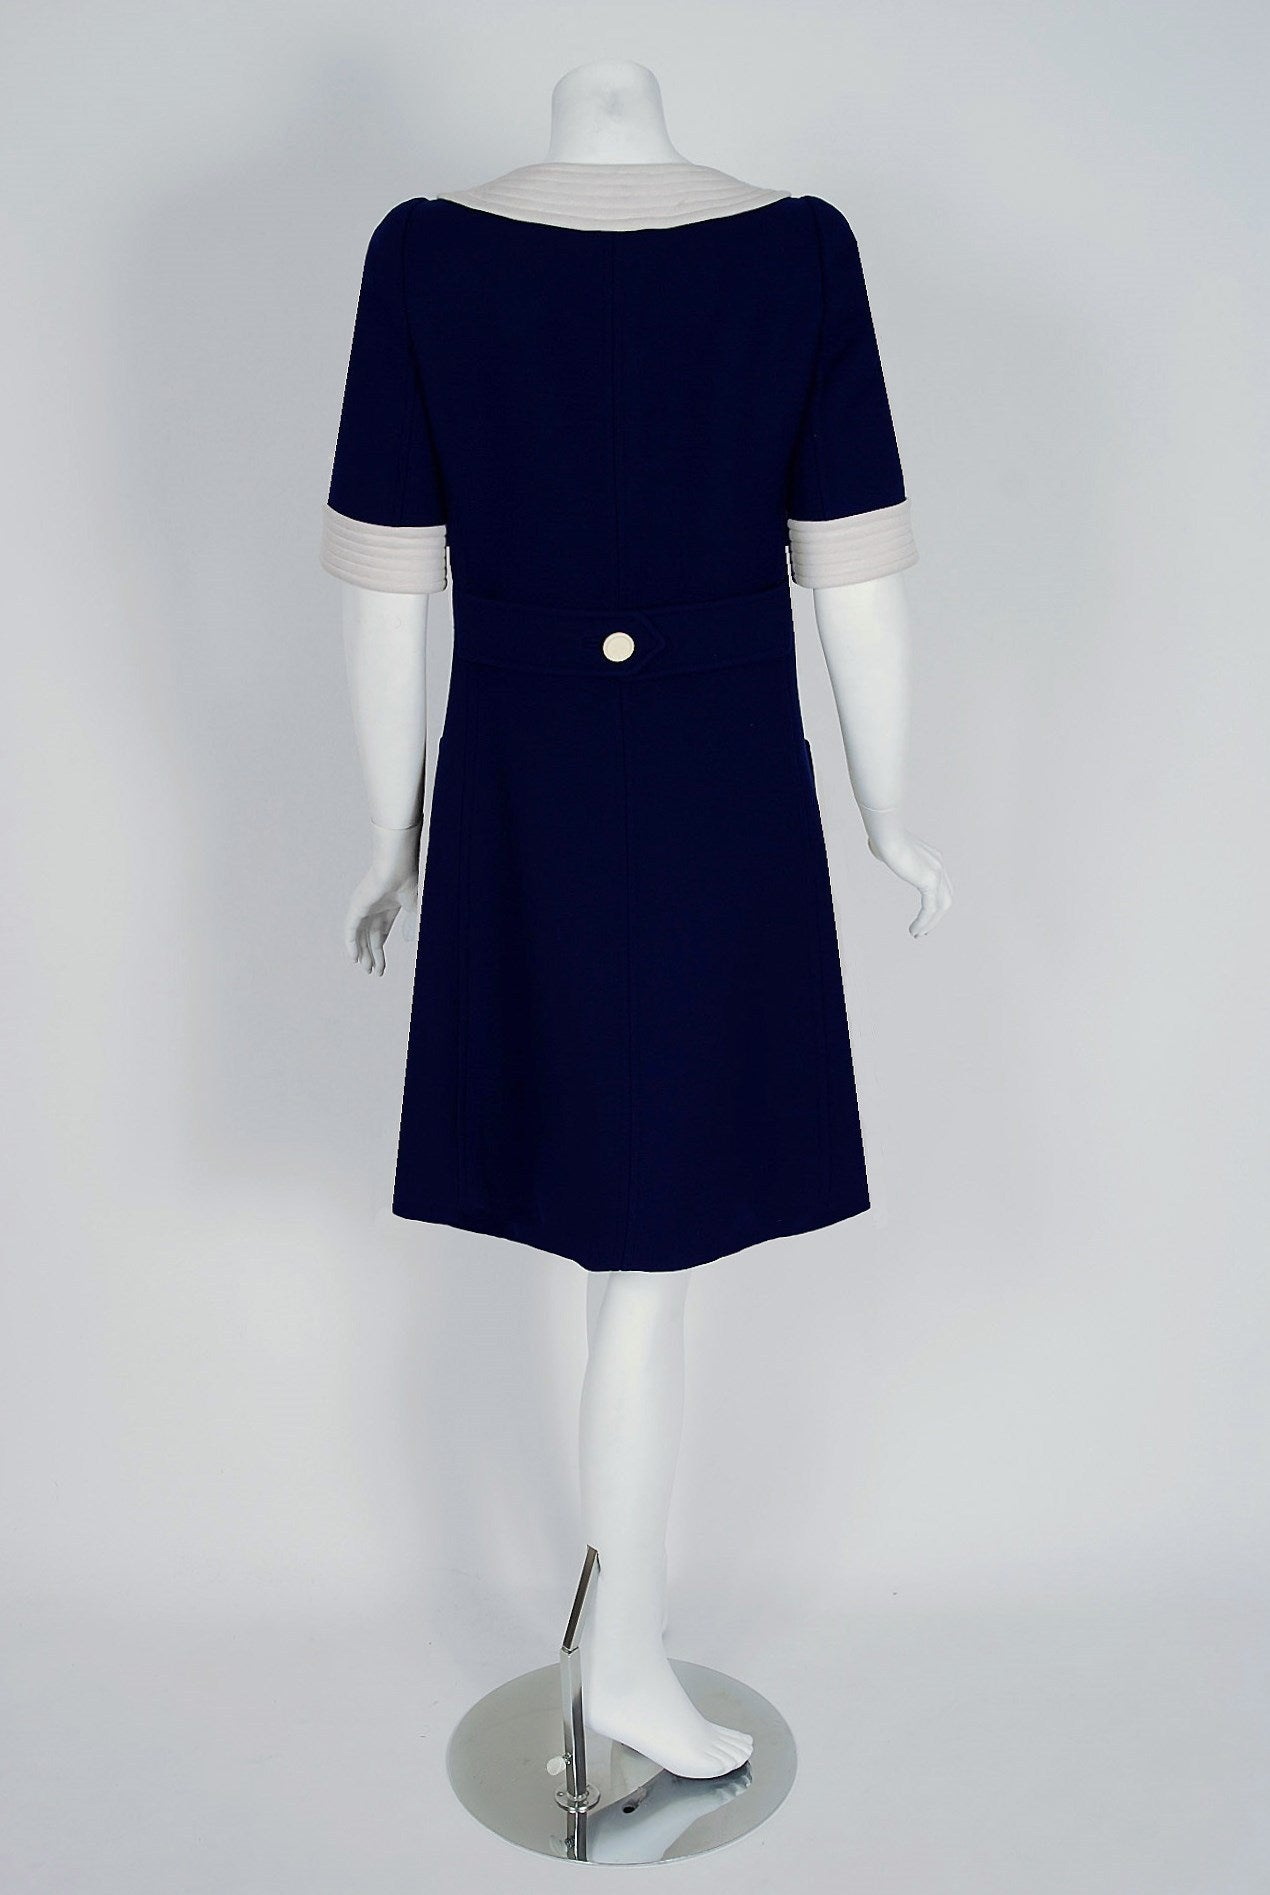 Women's 1967 Courreges Couture Navy-Blue & White Wool Block-Color Mod Space-Age Dress For Sale